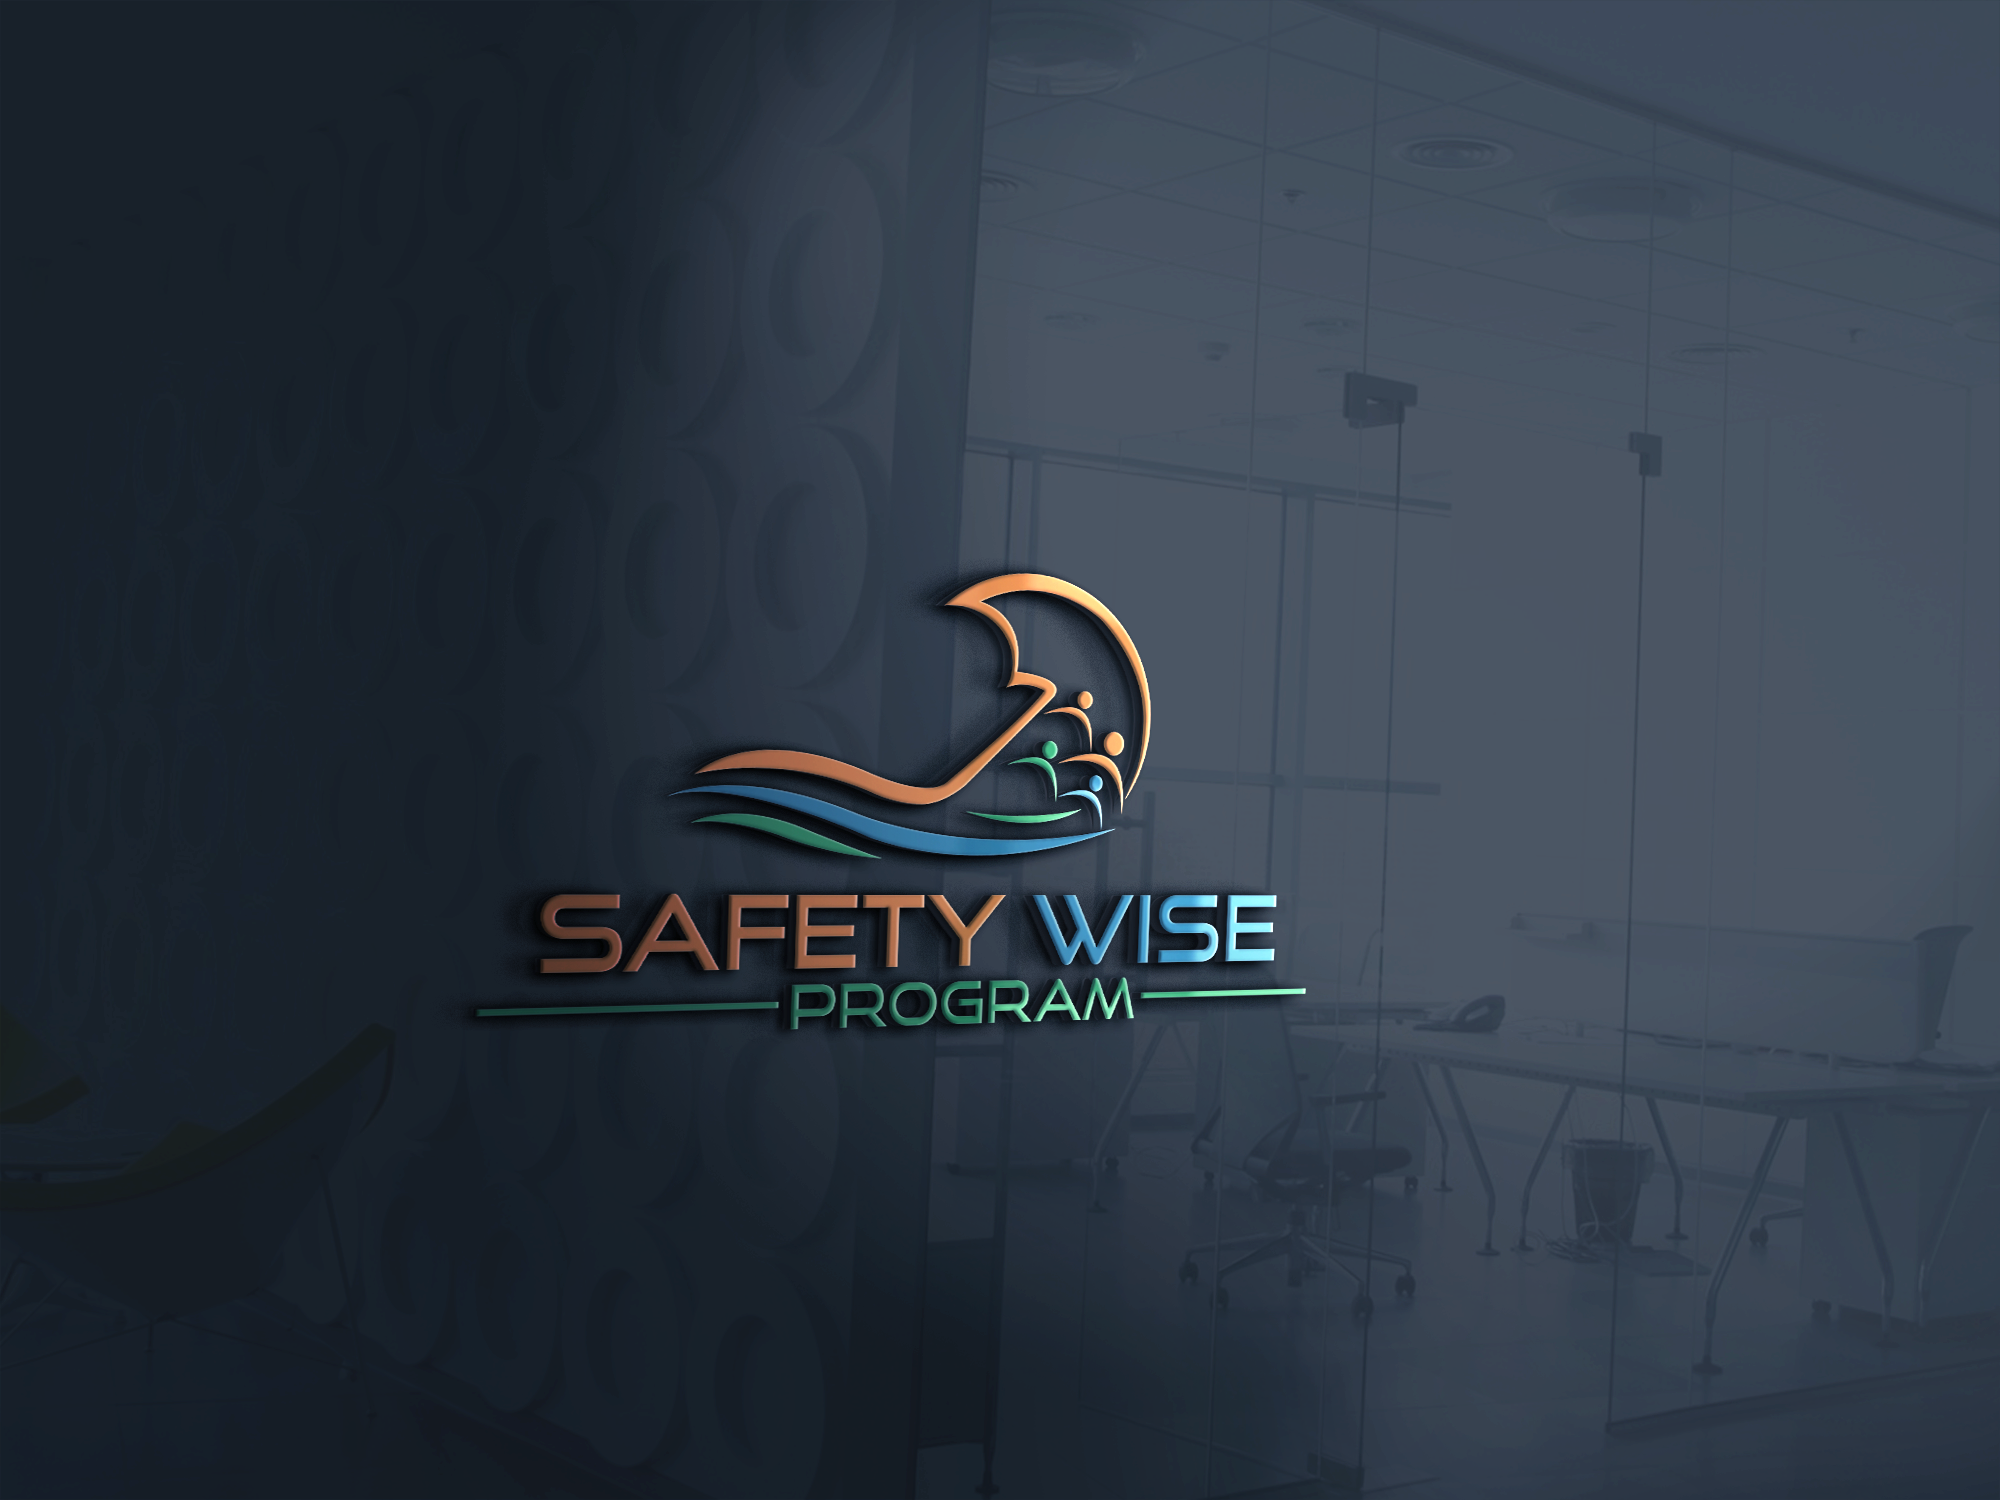 Logo Design by Prohor Ghagra - Entry No. 143 in the Logo Design Contest New Logo Design for Safety Wise Program.